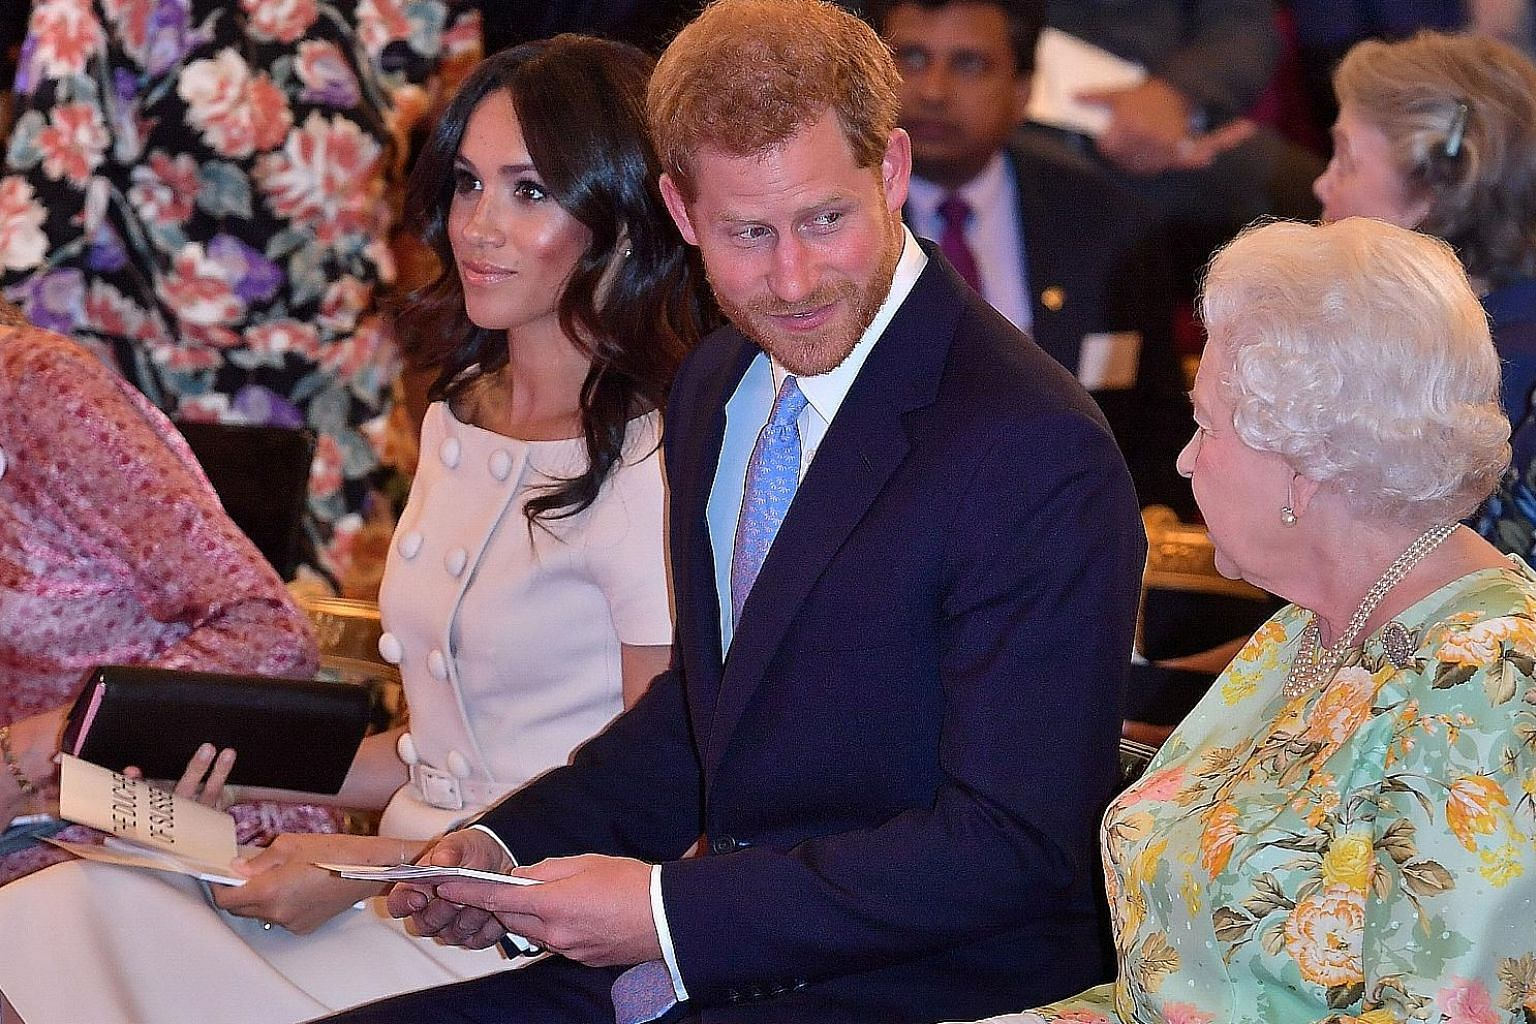 A 2018 photo of Britain's Queen Elizabeth with Prince Harry and his wife Meghan at a Buckingham Palace reception.